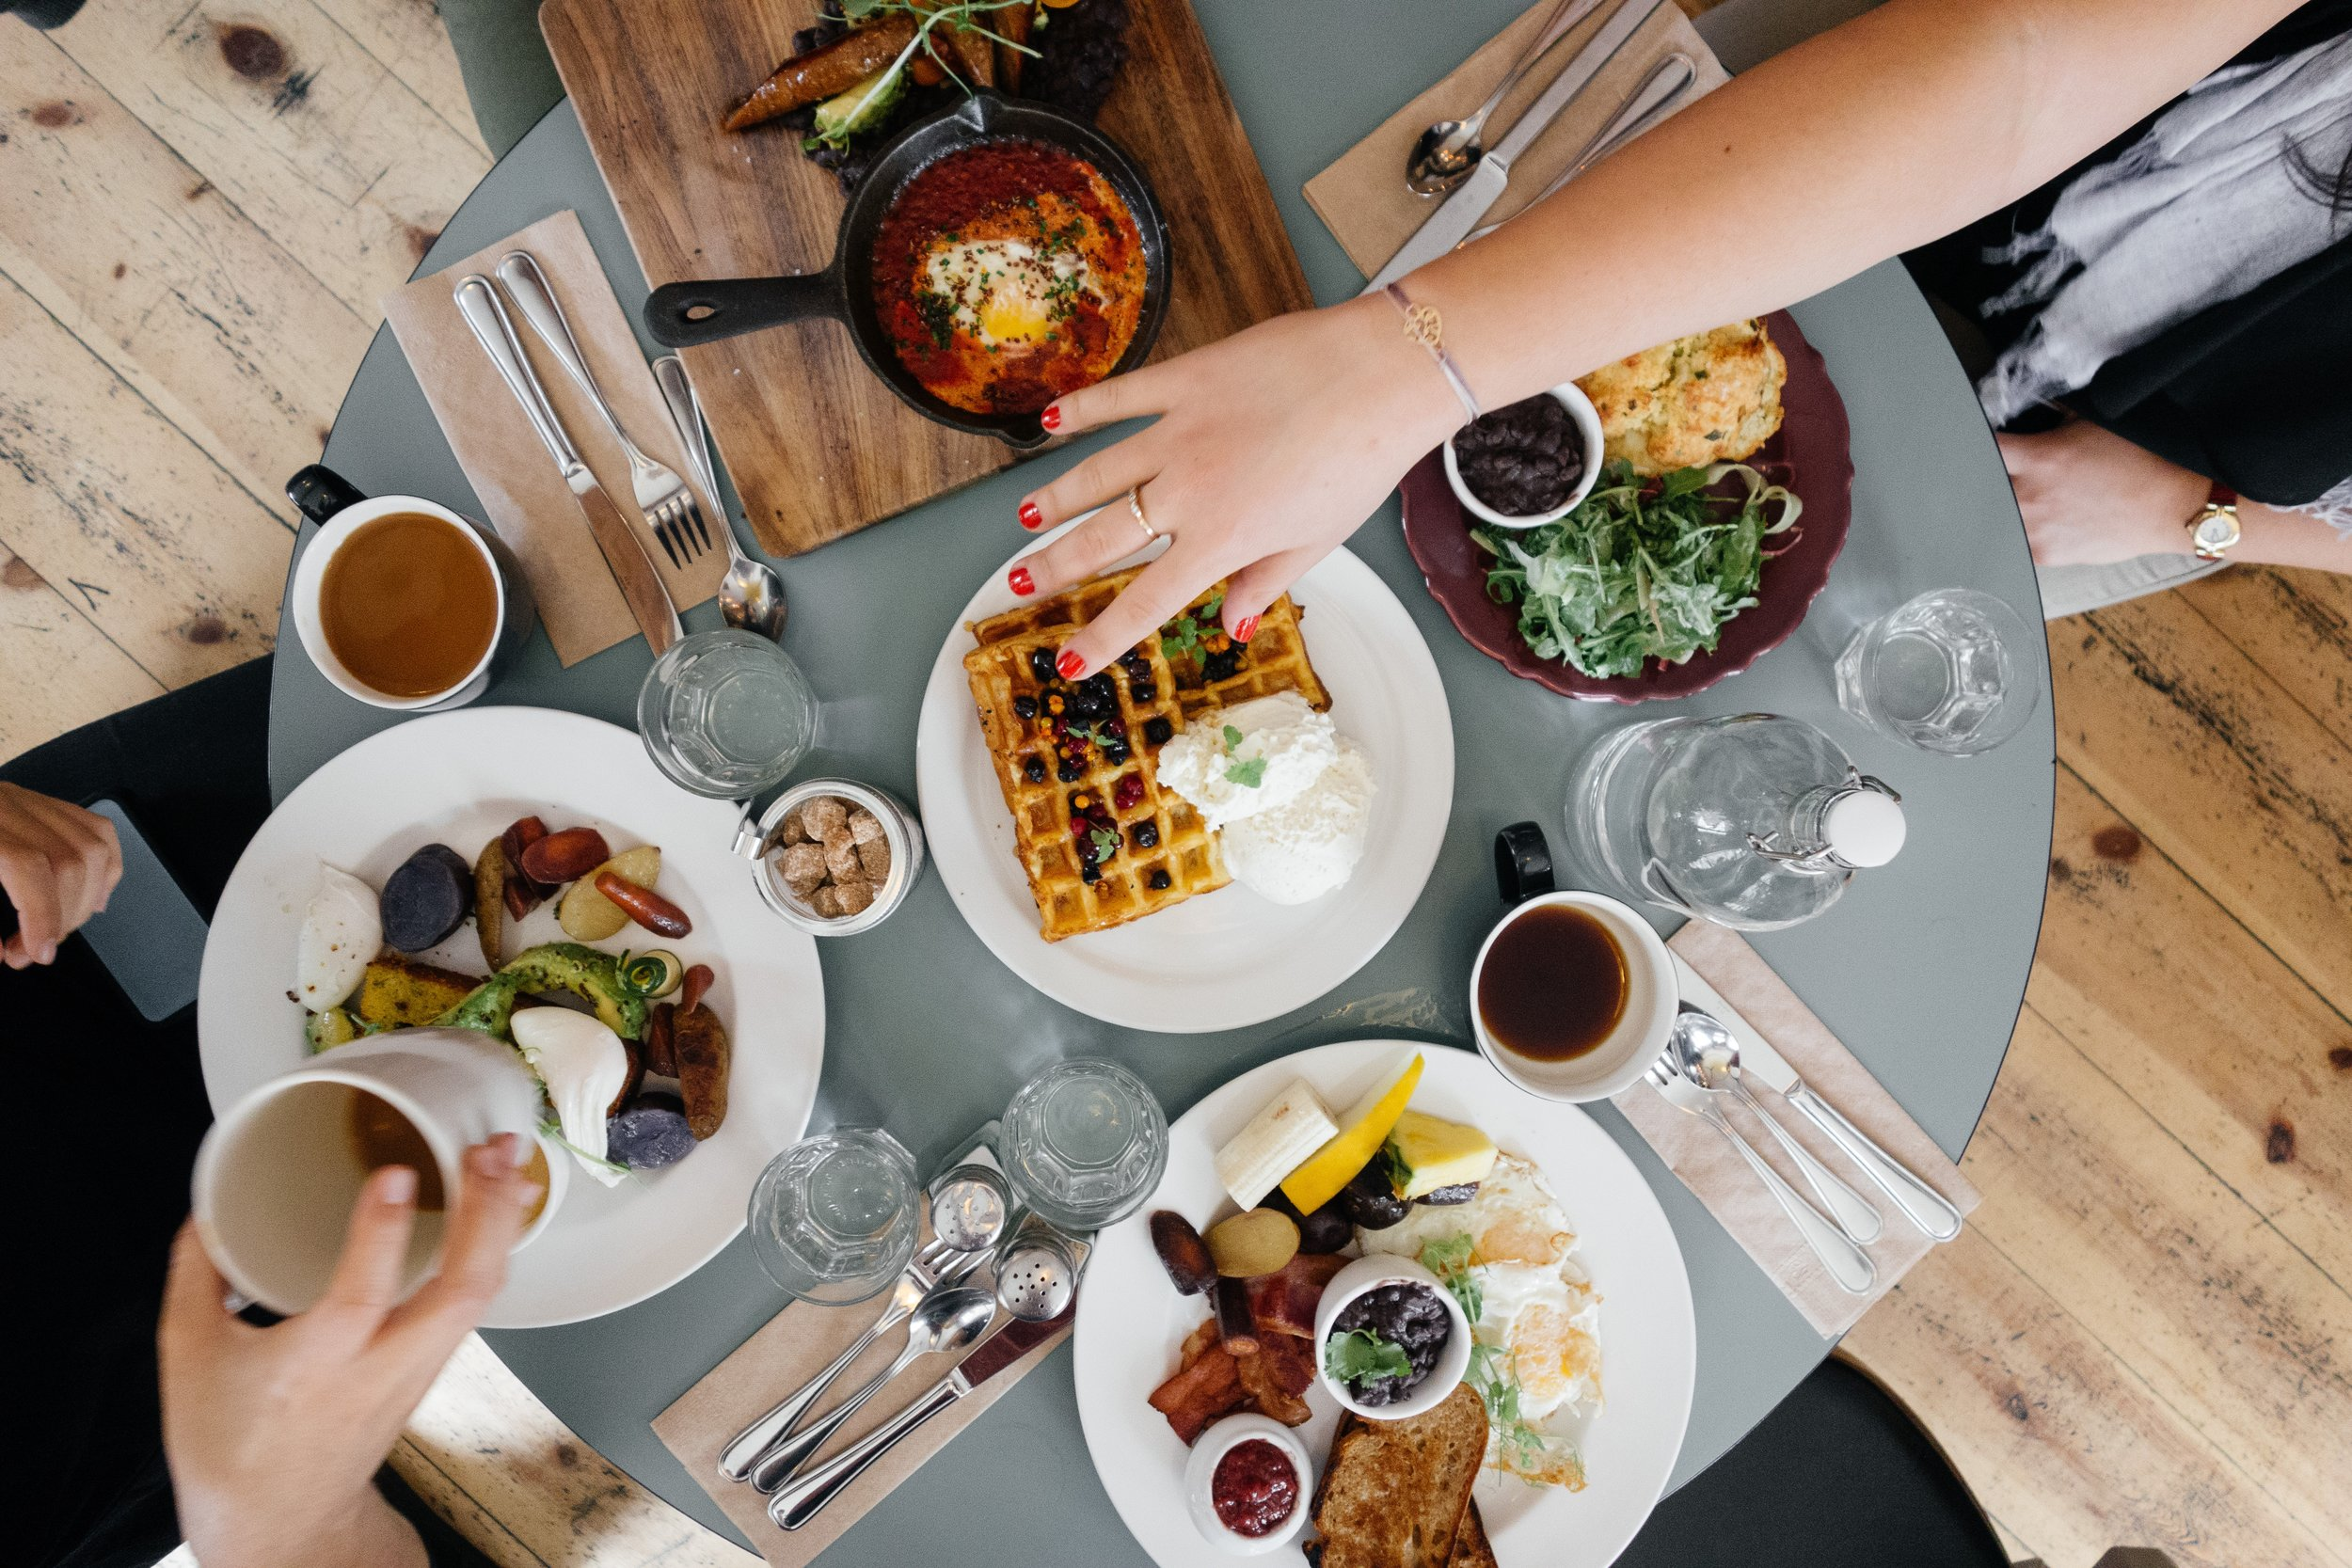 We all have choices about what we eat. Sometimes the waffles are very tempting. Photo by Ali Inay on Unsplash